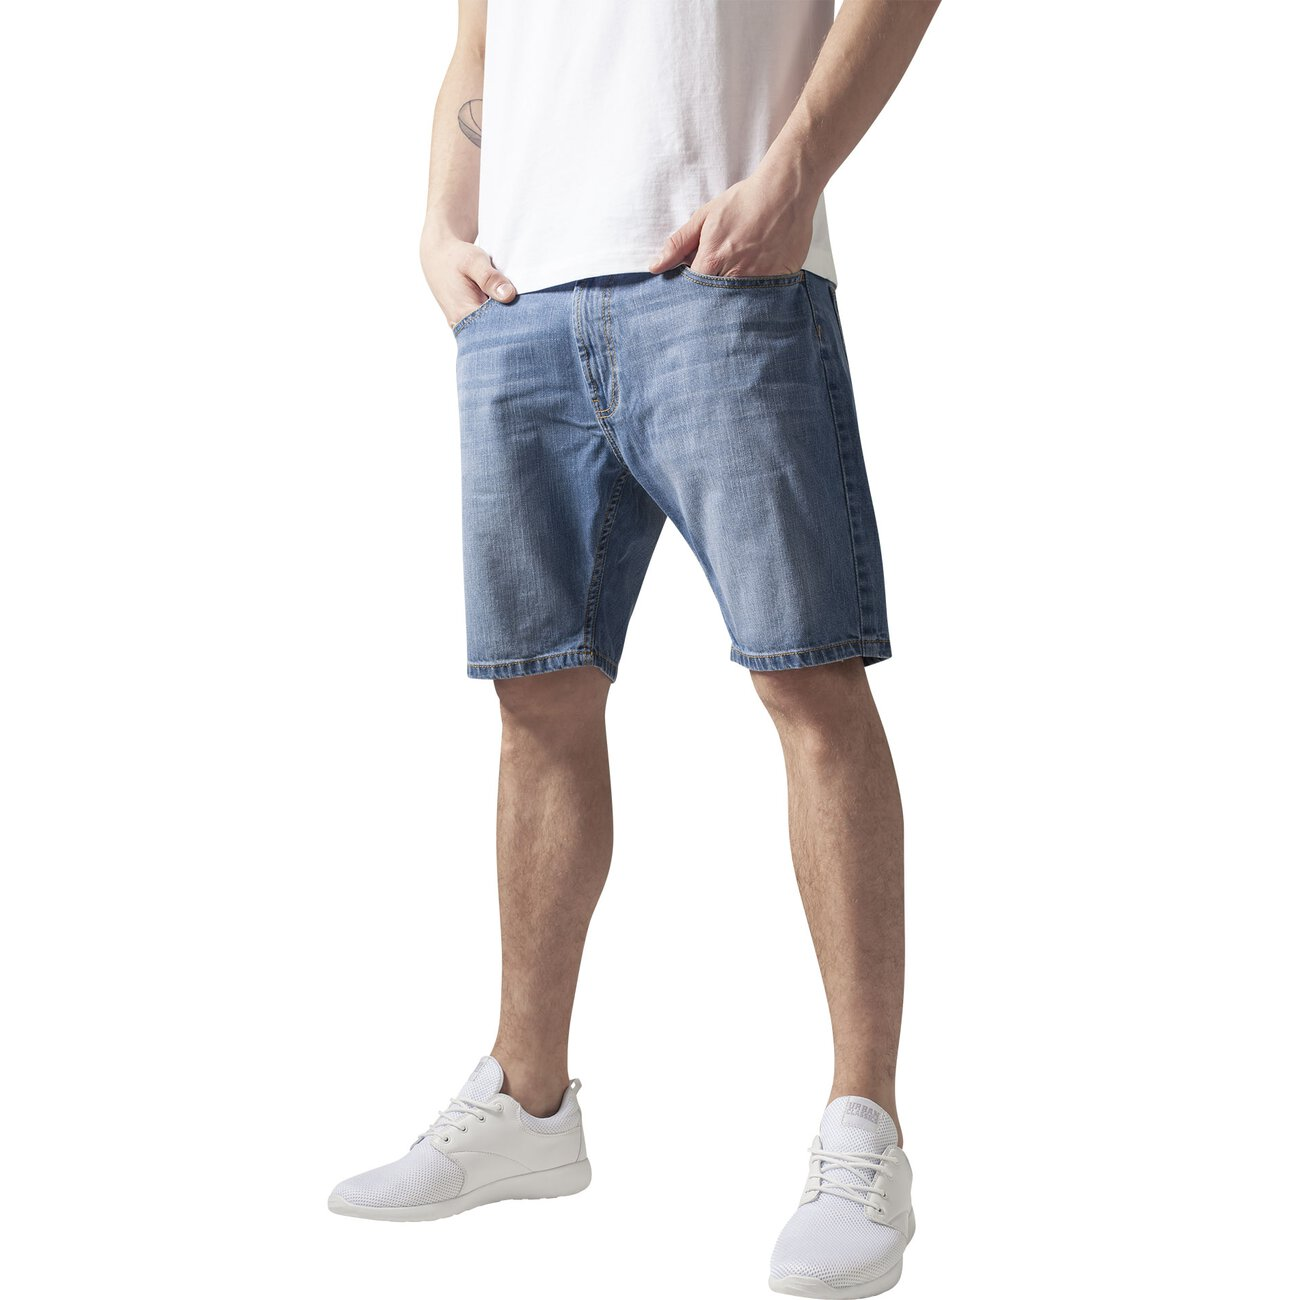 urban classics jeans shorts herren casual denim shorts tb 1016. Black Bedroom Furniture Sets. Home Design Ideas